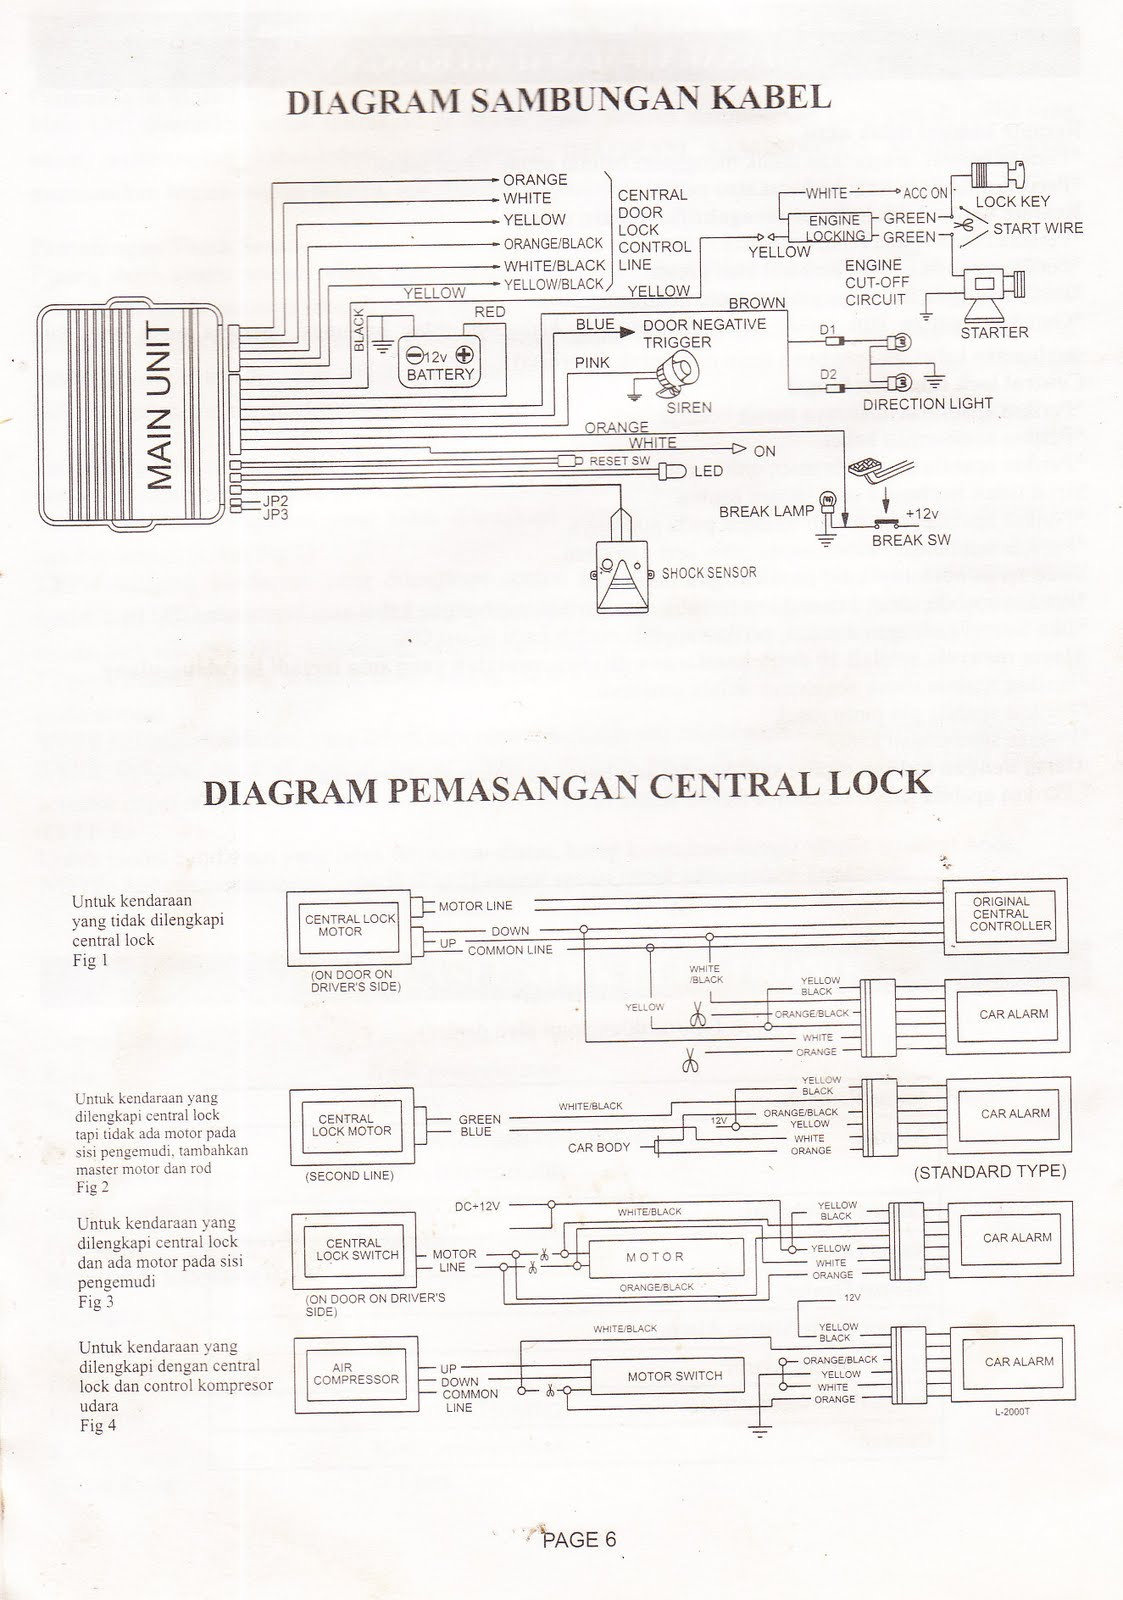 Mobil Alarm Wiring Diagram 26 Images Bomag Skema2balarm 100 For Hkc Recommended Home Security